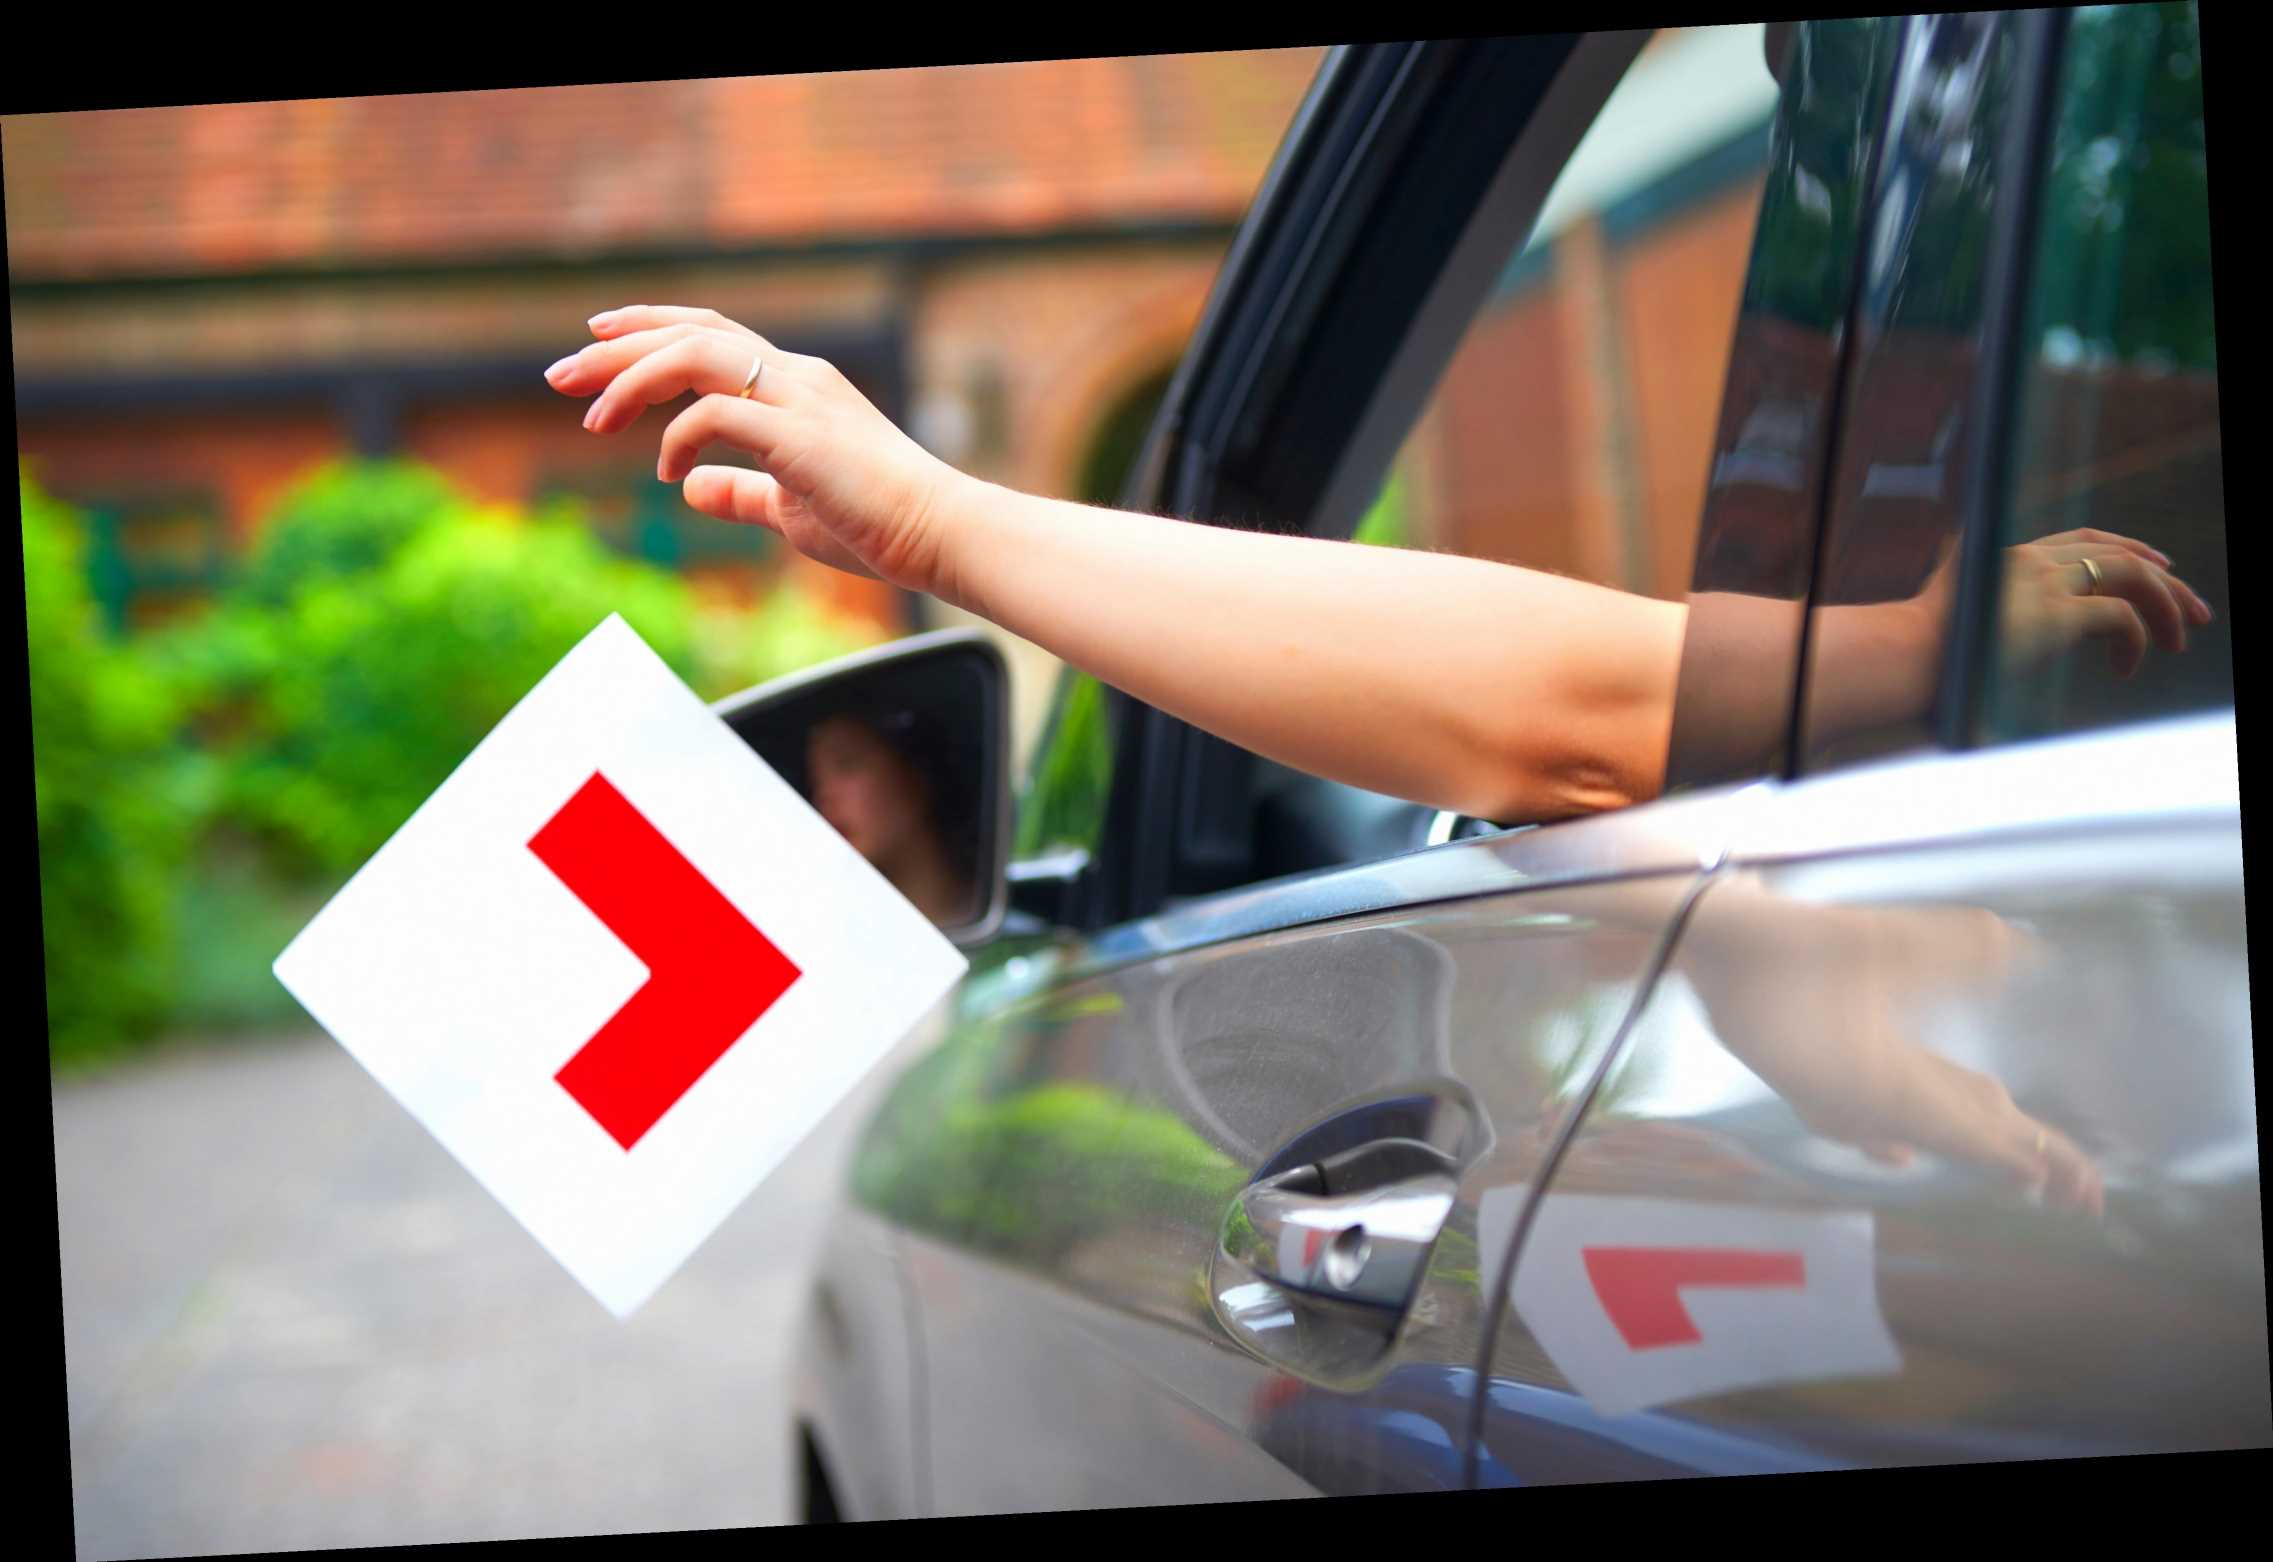 Driving tests restart today in England – 7 ways they've changed